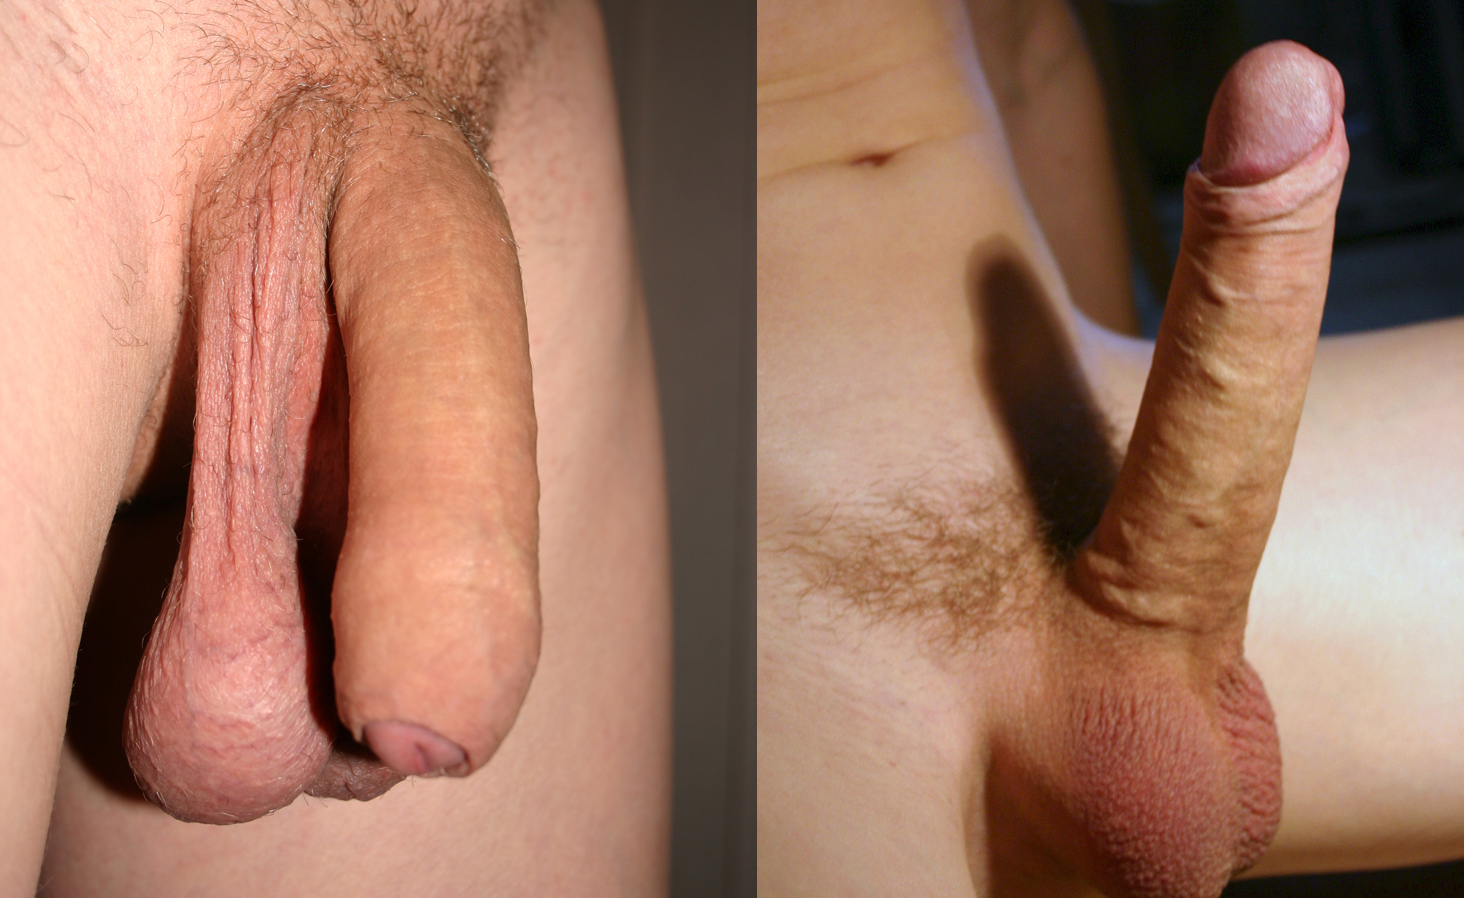 Prostate Cancer Treatment Leaves Some Men With Unexpected Penis Shrinkage